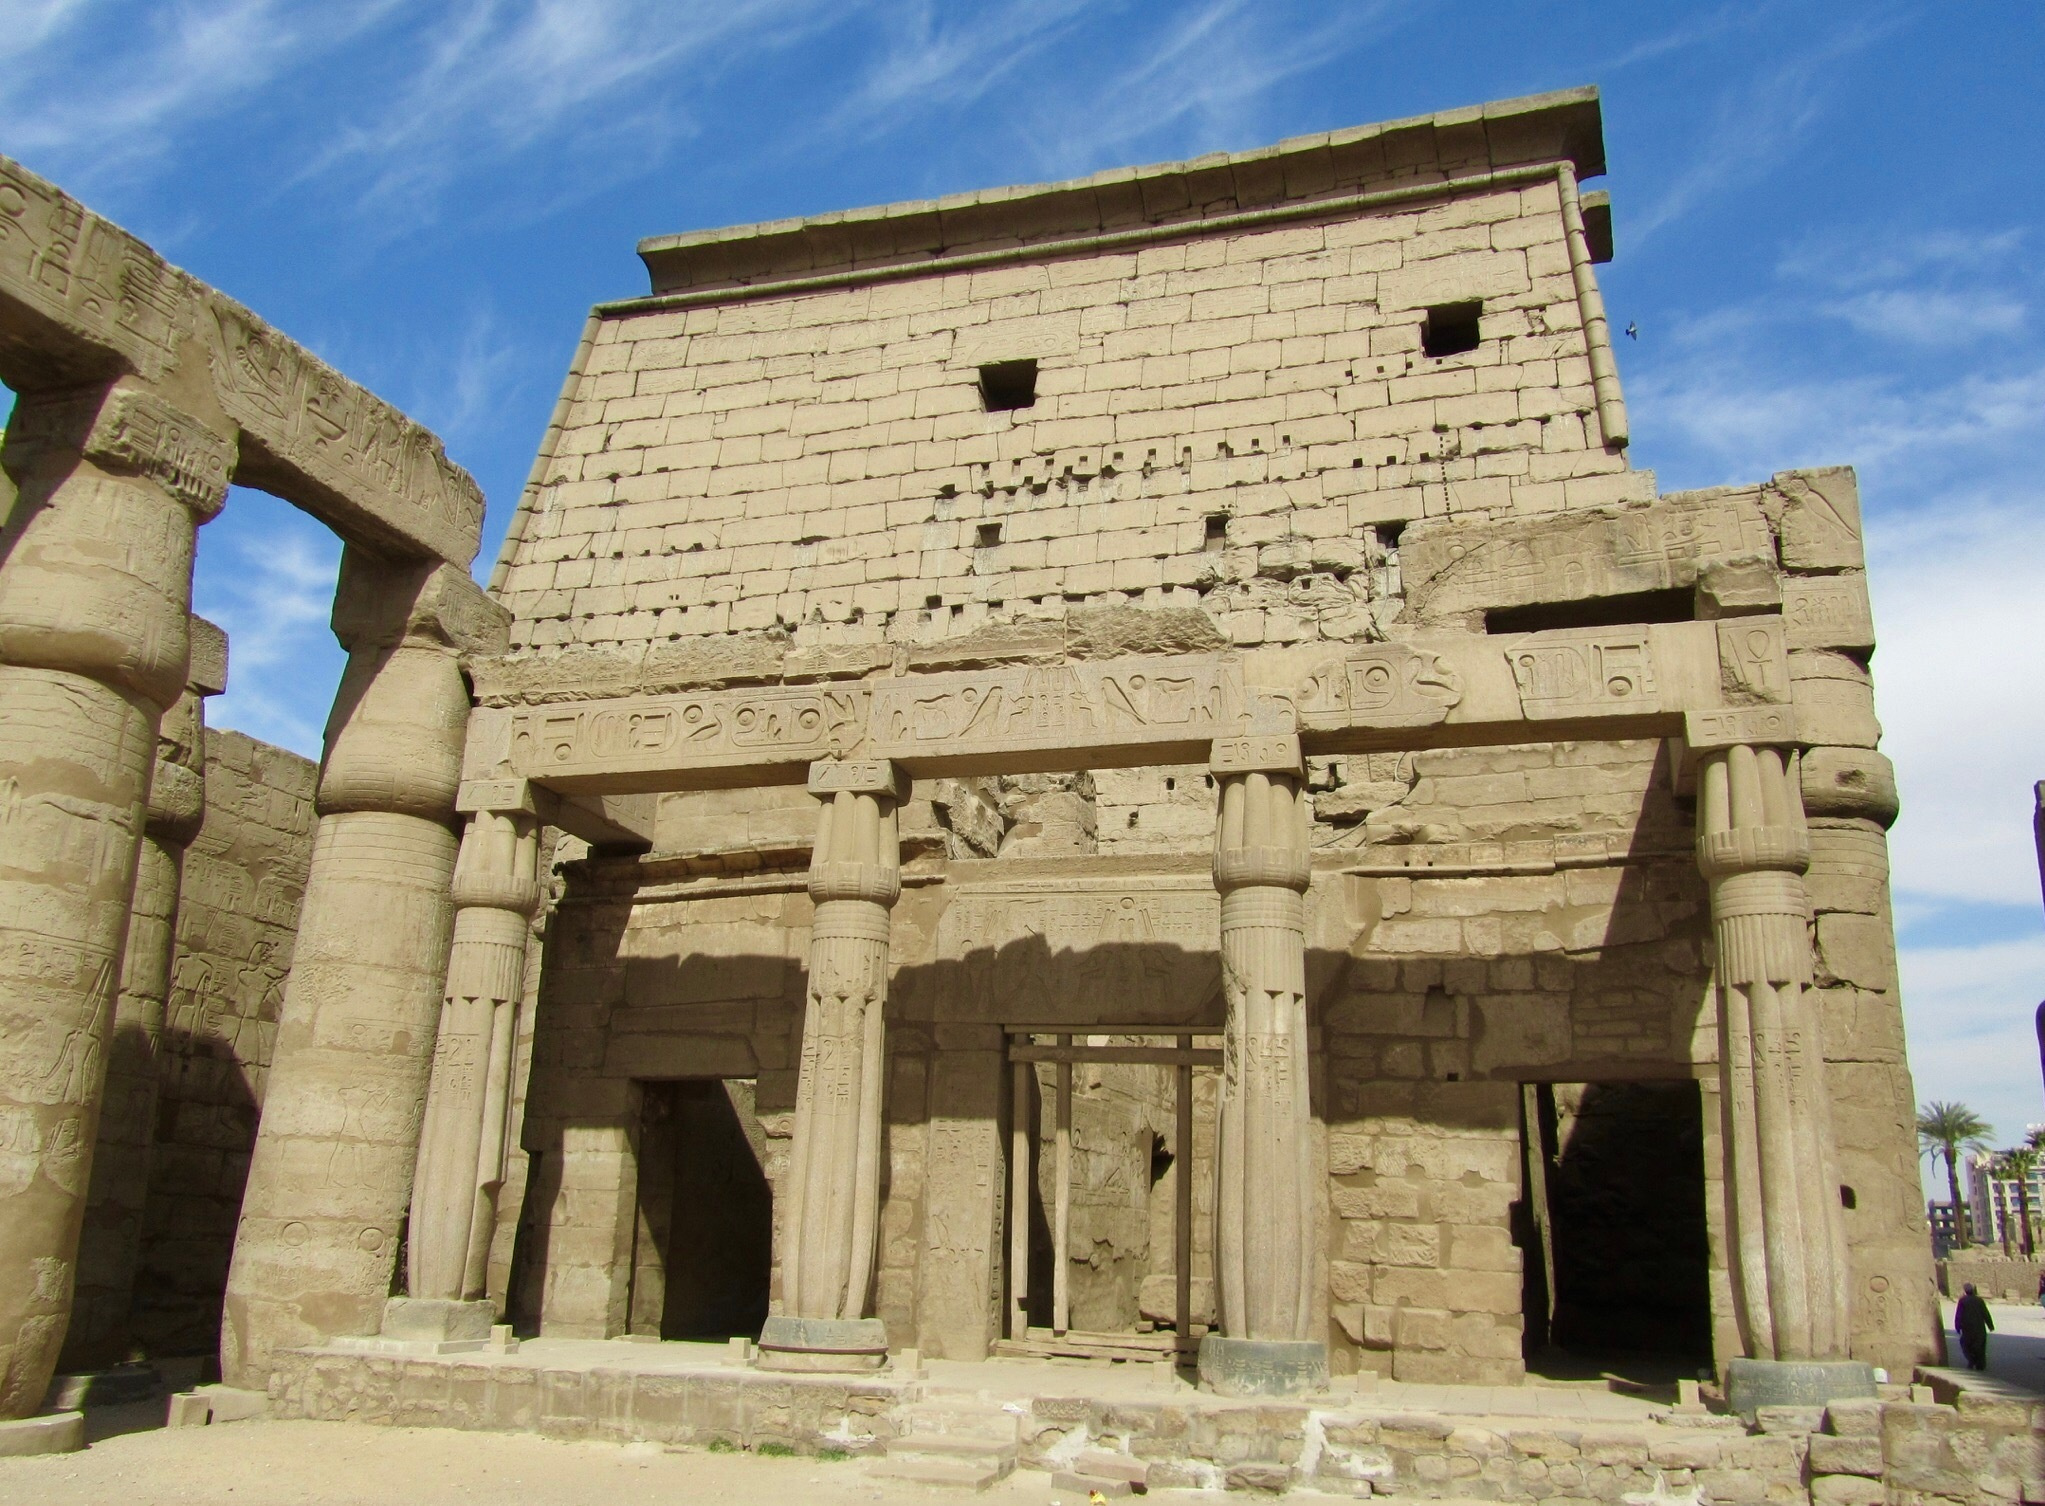 Welecome to Egypt......Luxor temple. by Ashraf Younis